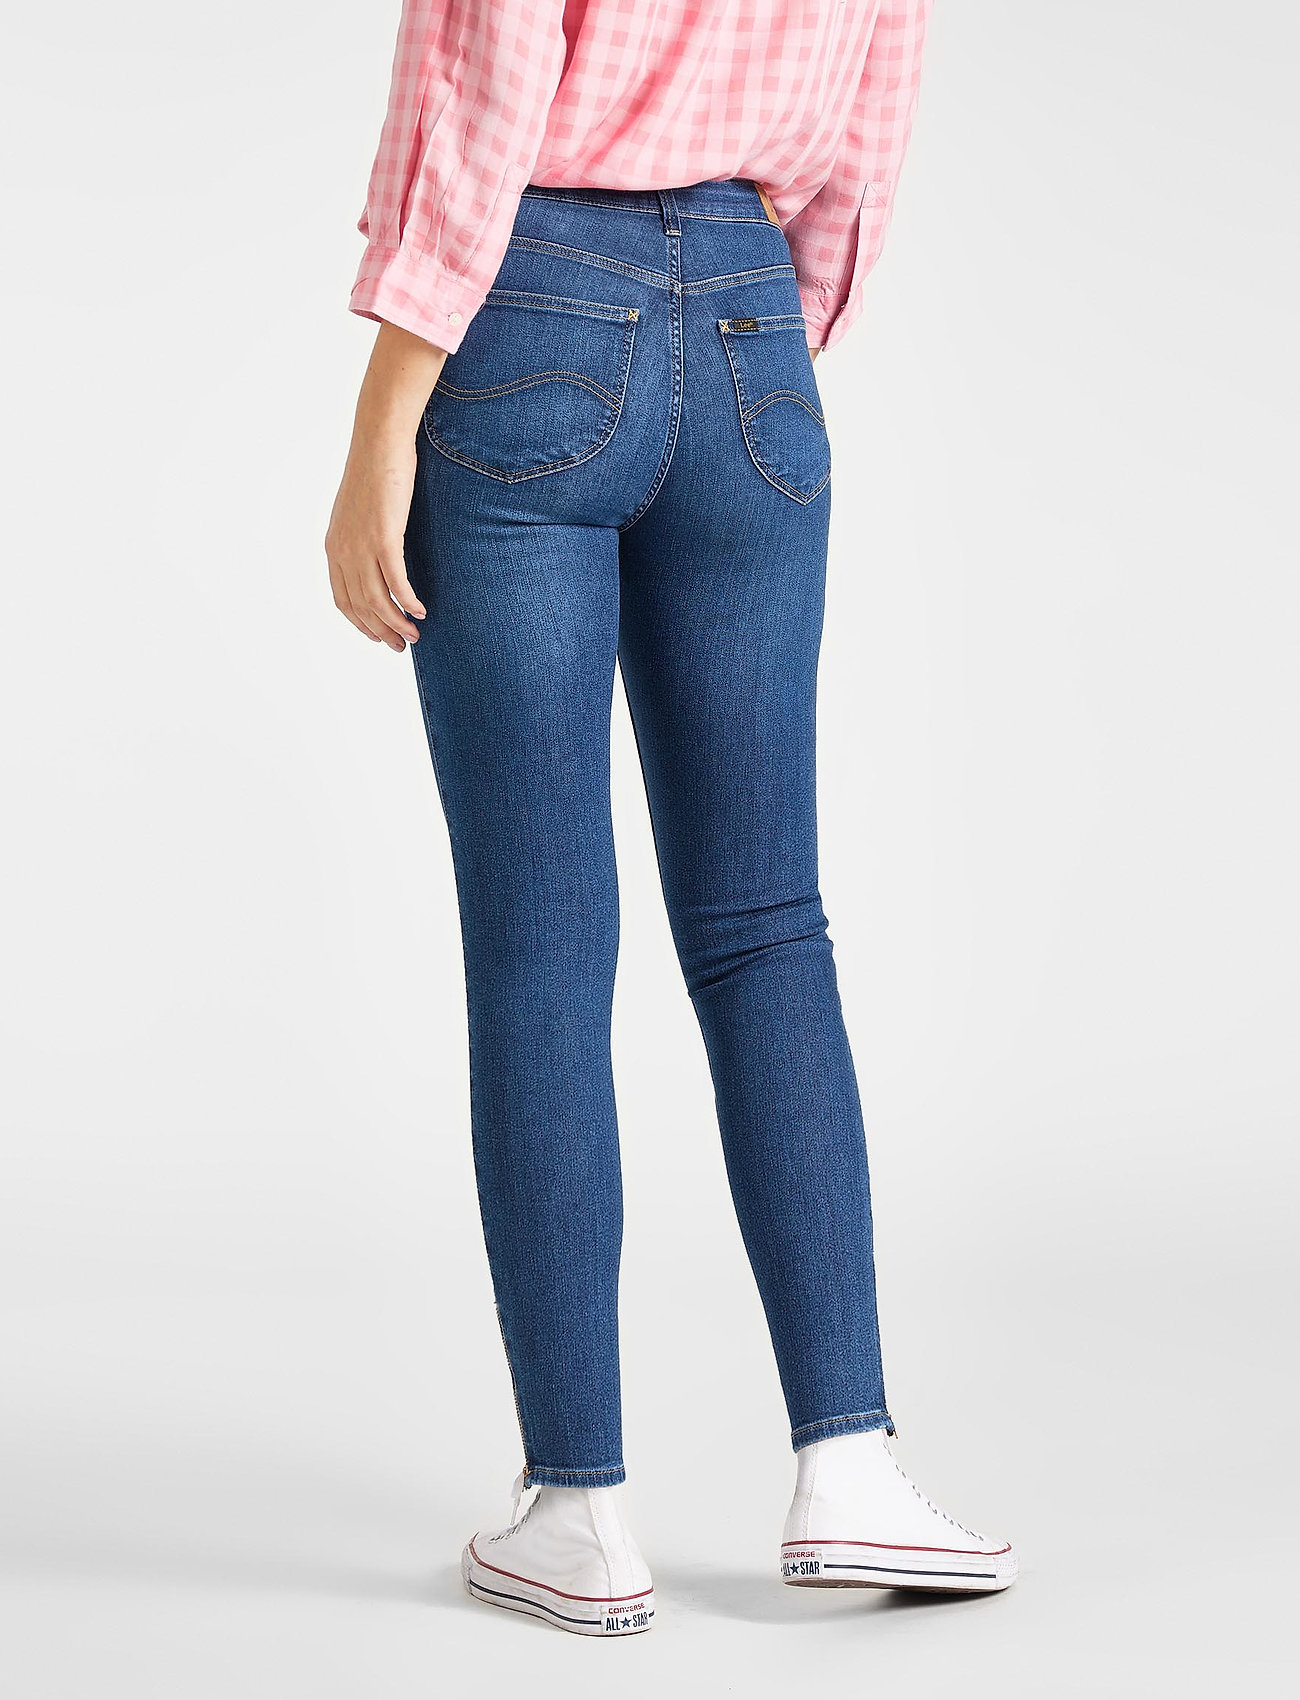 Lee Jeans Scarlett High Zip -